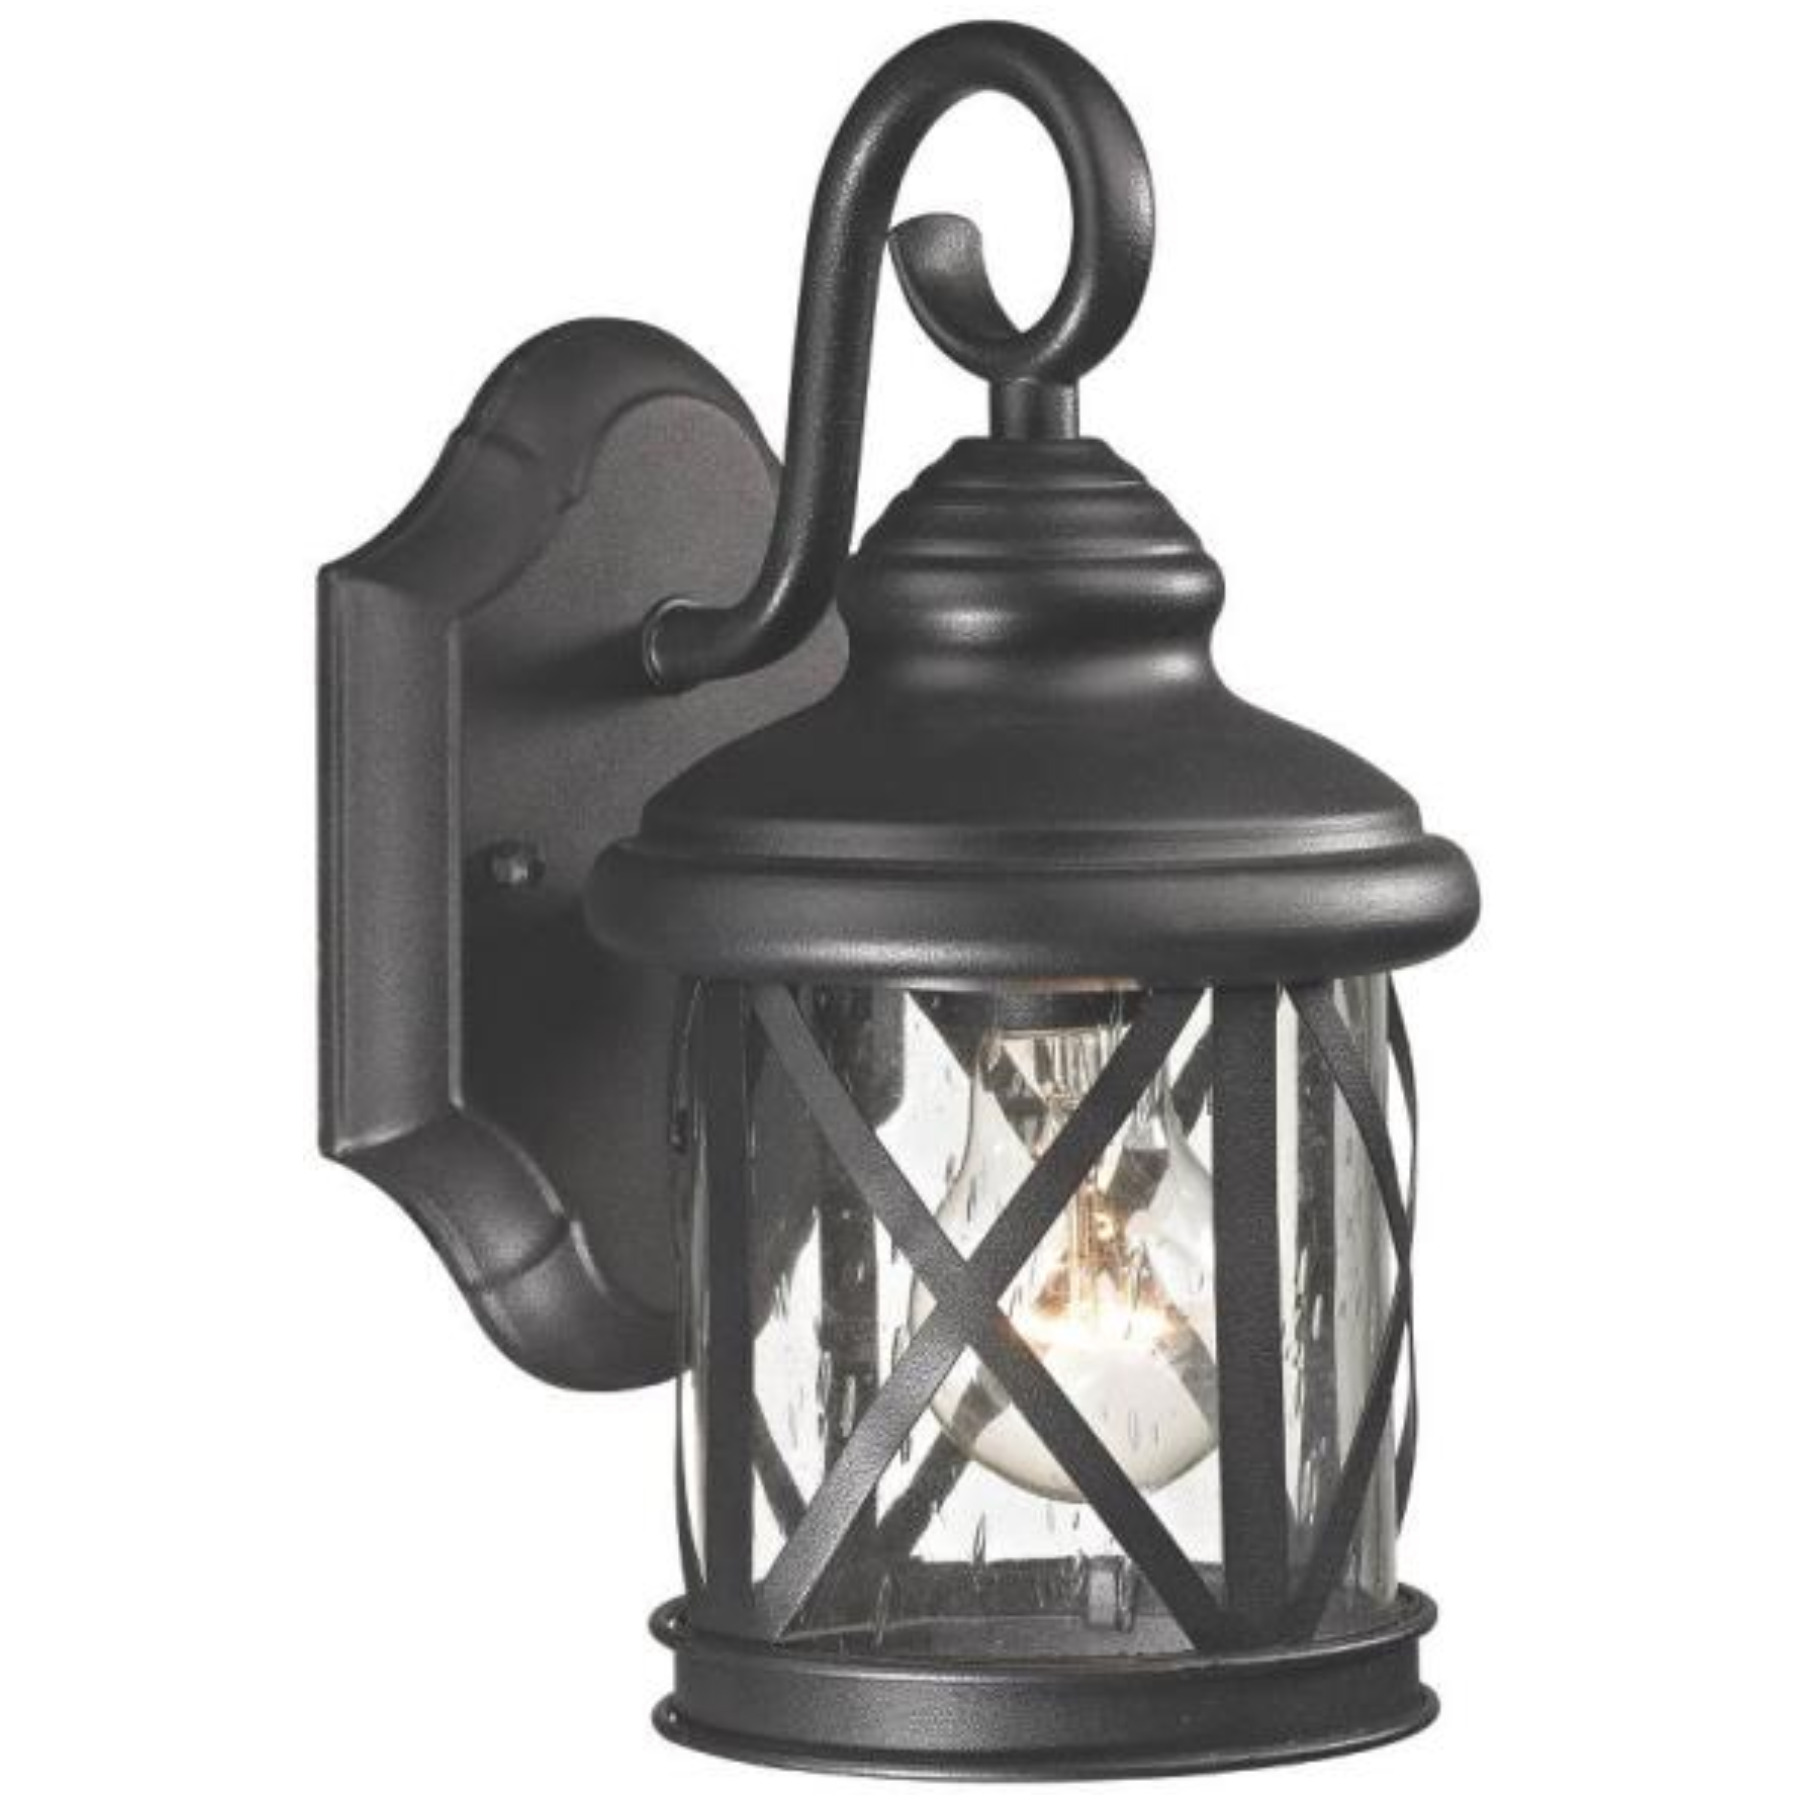 LANTERN OUTDR WALL BLK 1 LIGHT